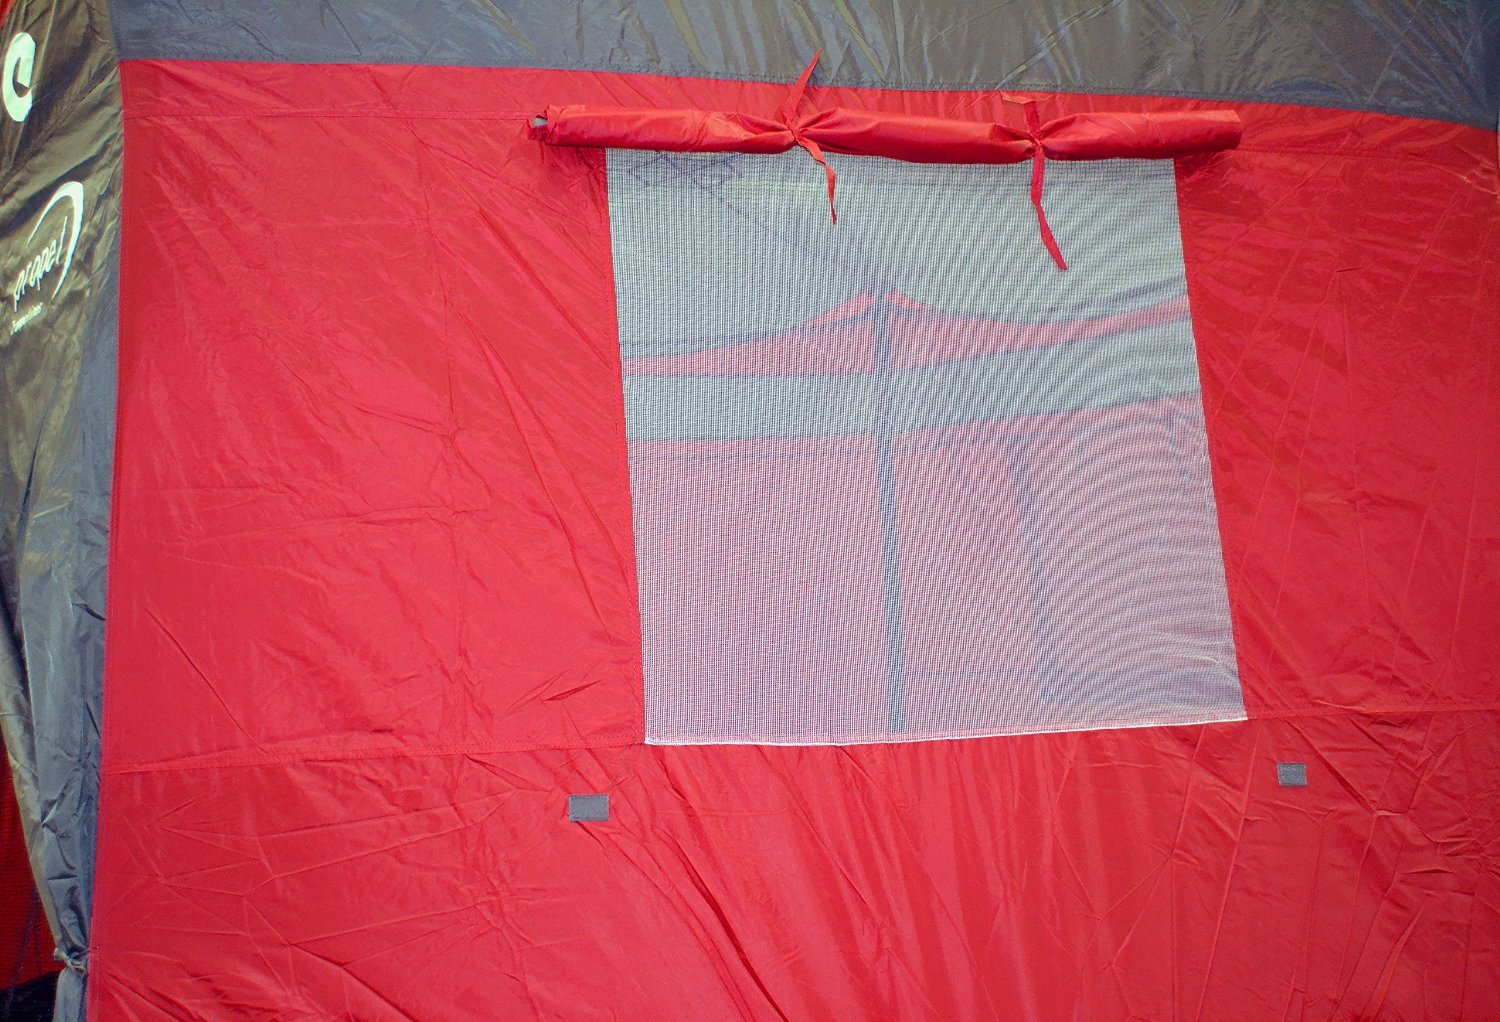 Clubhouse Tent Accessory Kit for Propel 12' Trampoline with 6 pole enclosure - TENT ONLY by Propel (Image #7)